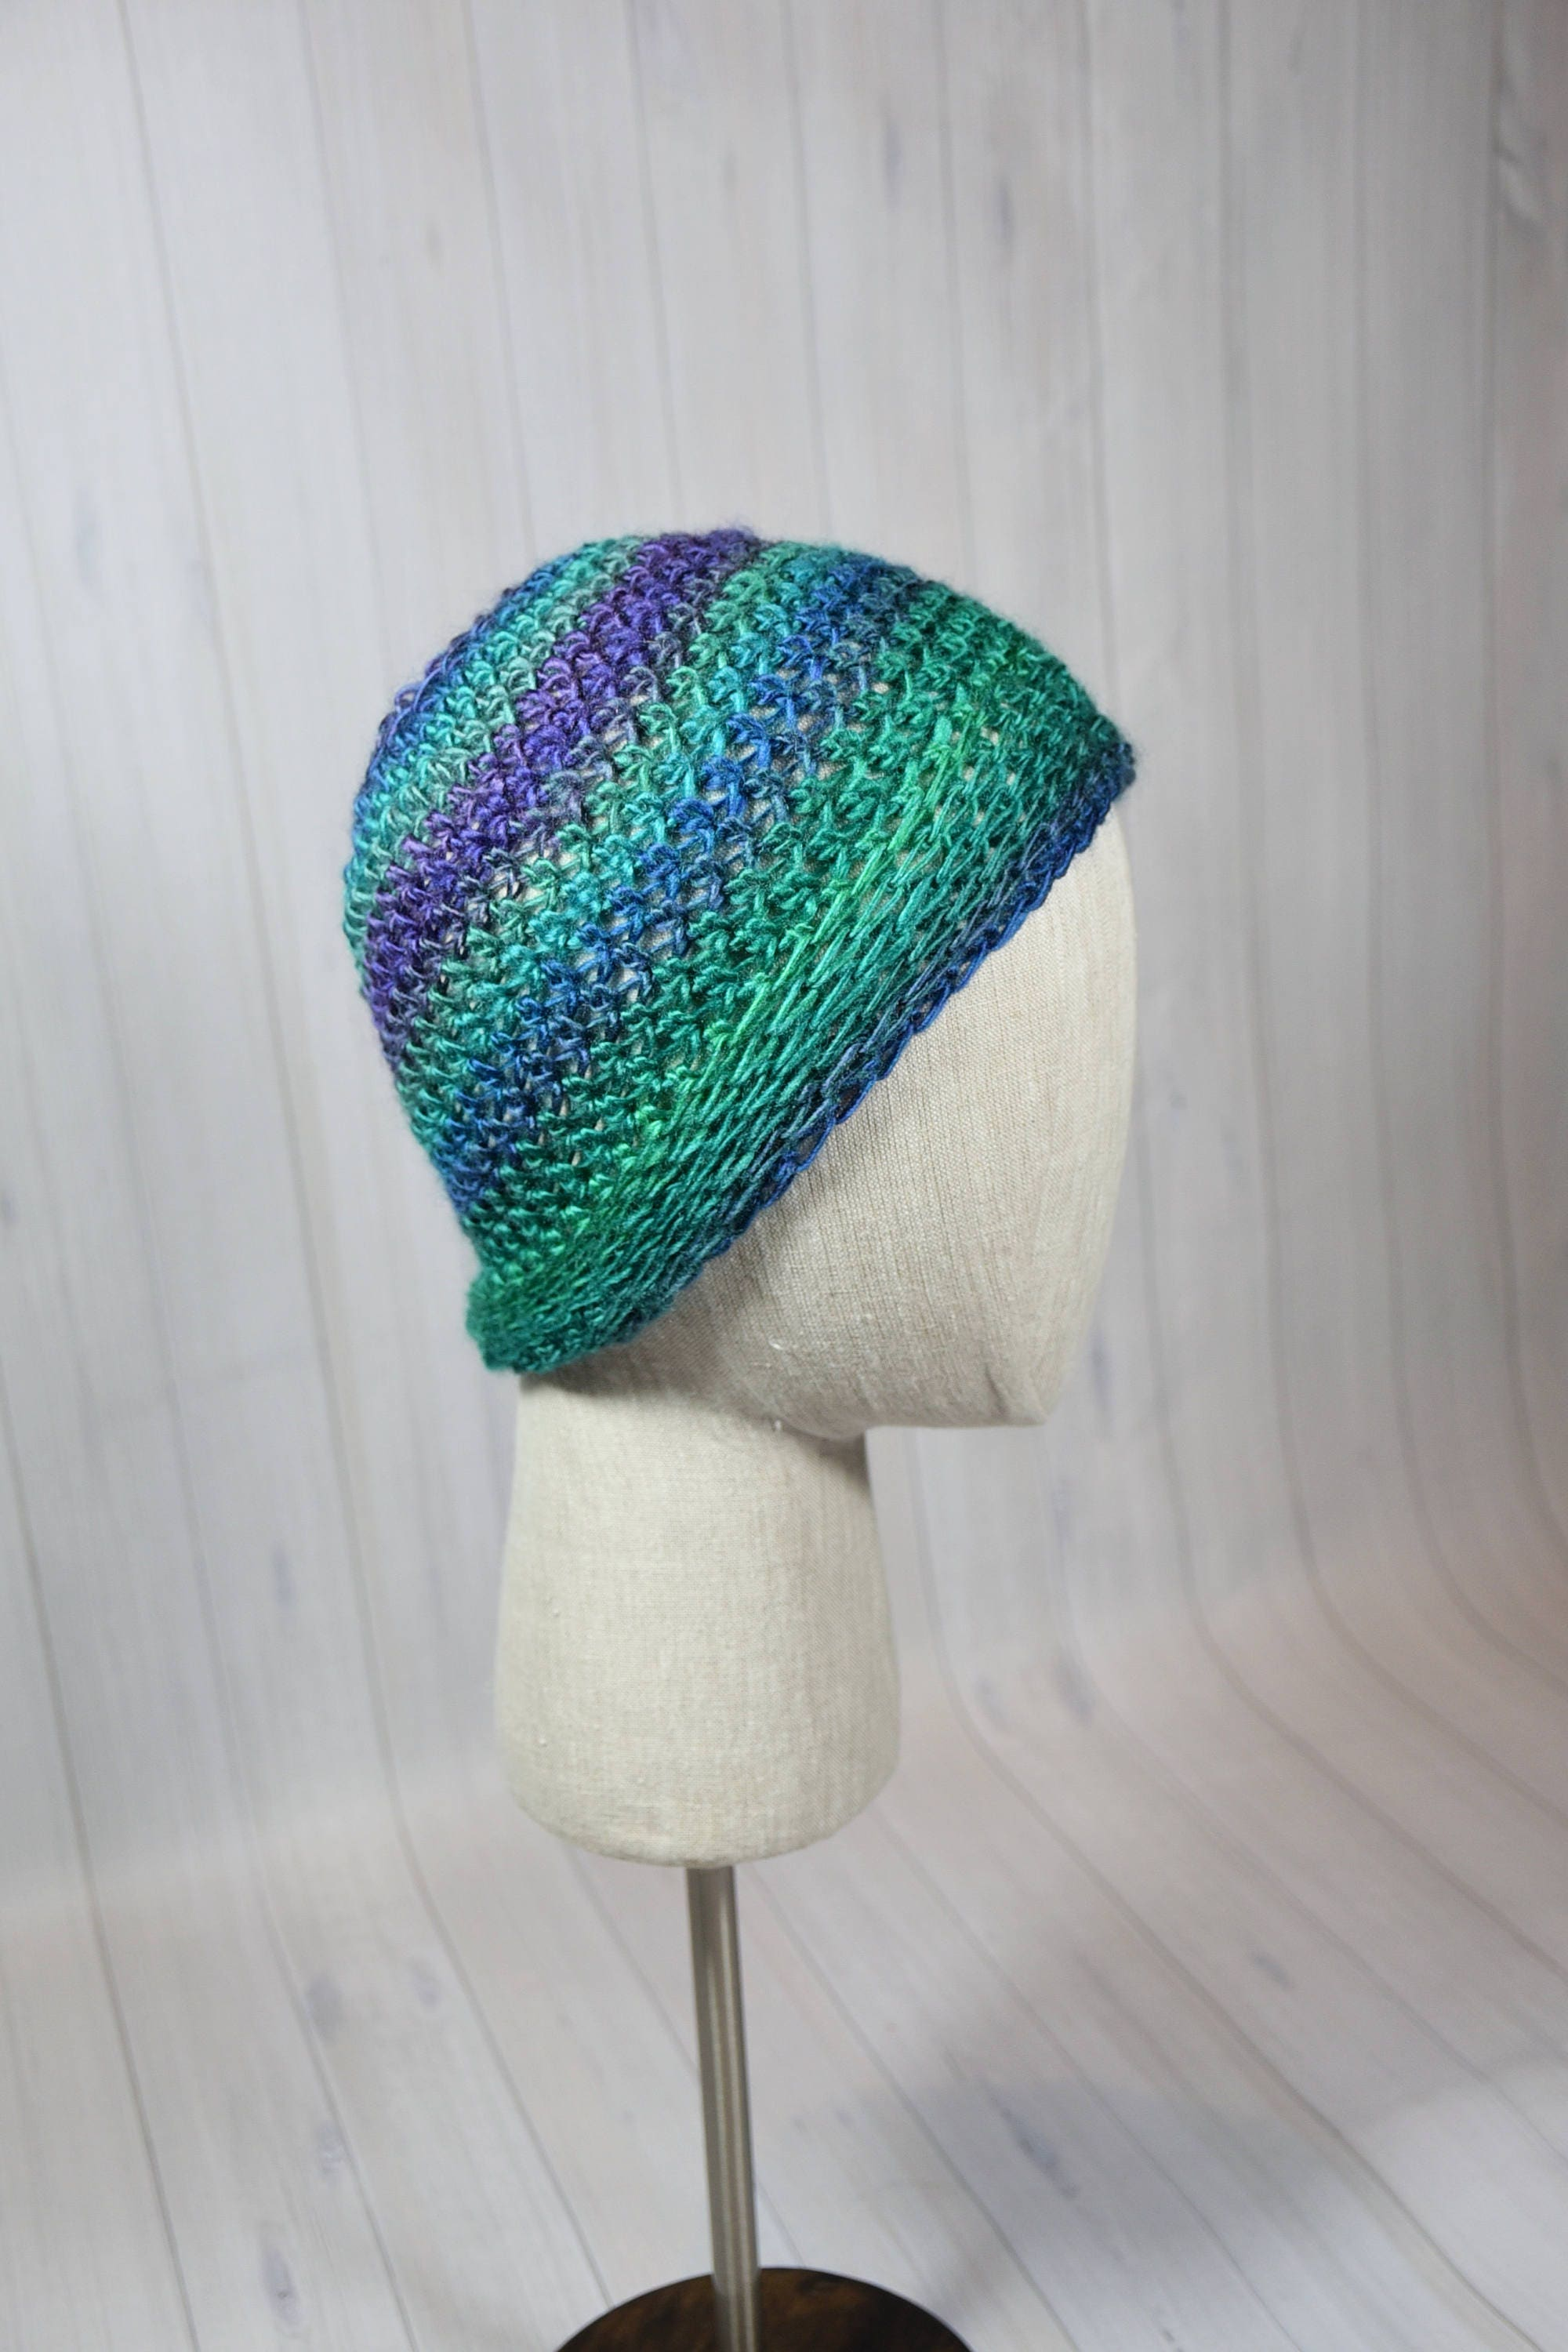 b1d2ebed7288a Crochet Dragonfly Messy Bun Ponytail Hat  Accessory  Winter wear  Birthday  Gift